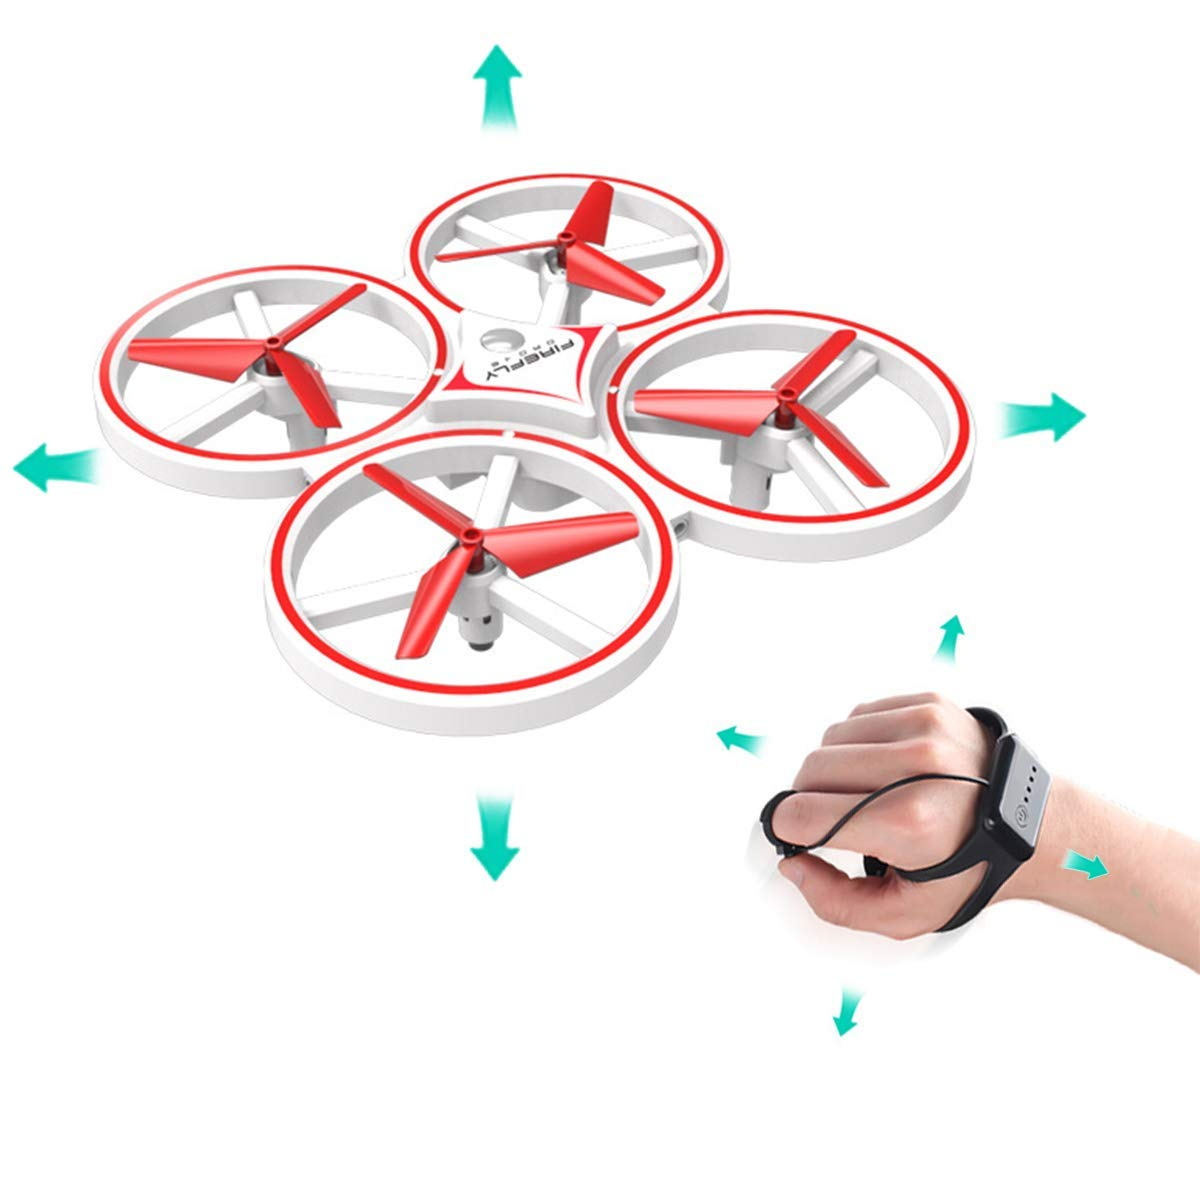 UPLEYING Smart Gesture Control Drone Automatically Avoid Obstacles (B) by UPLEYING (Image #1)